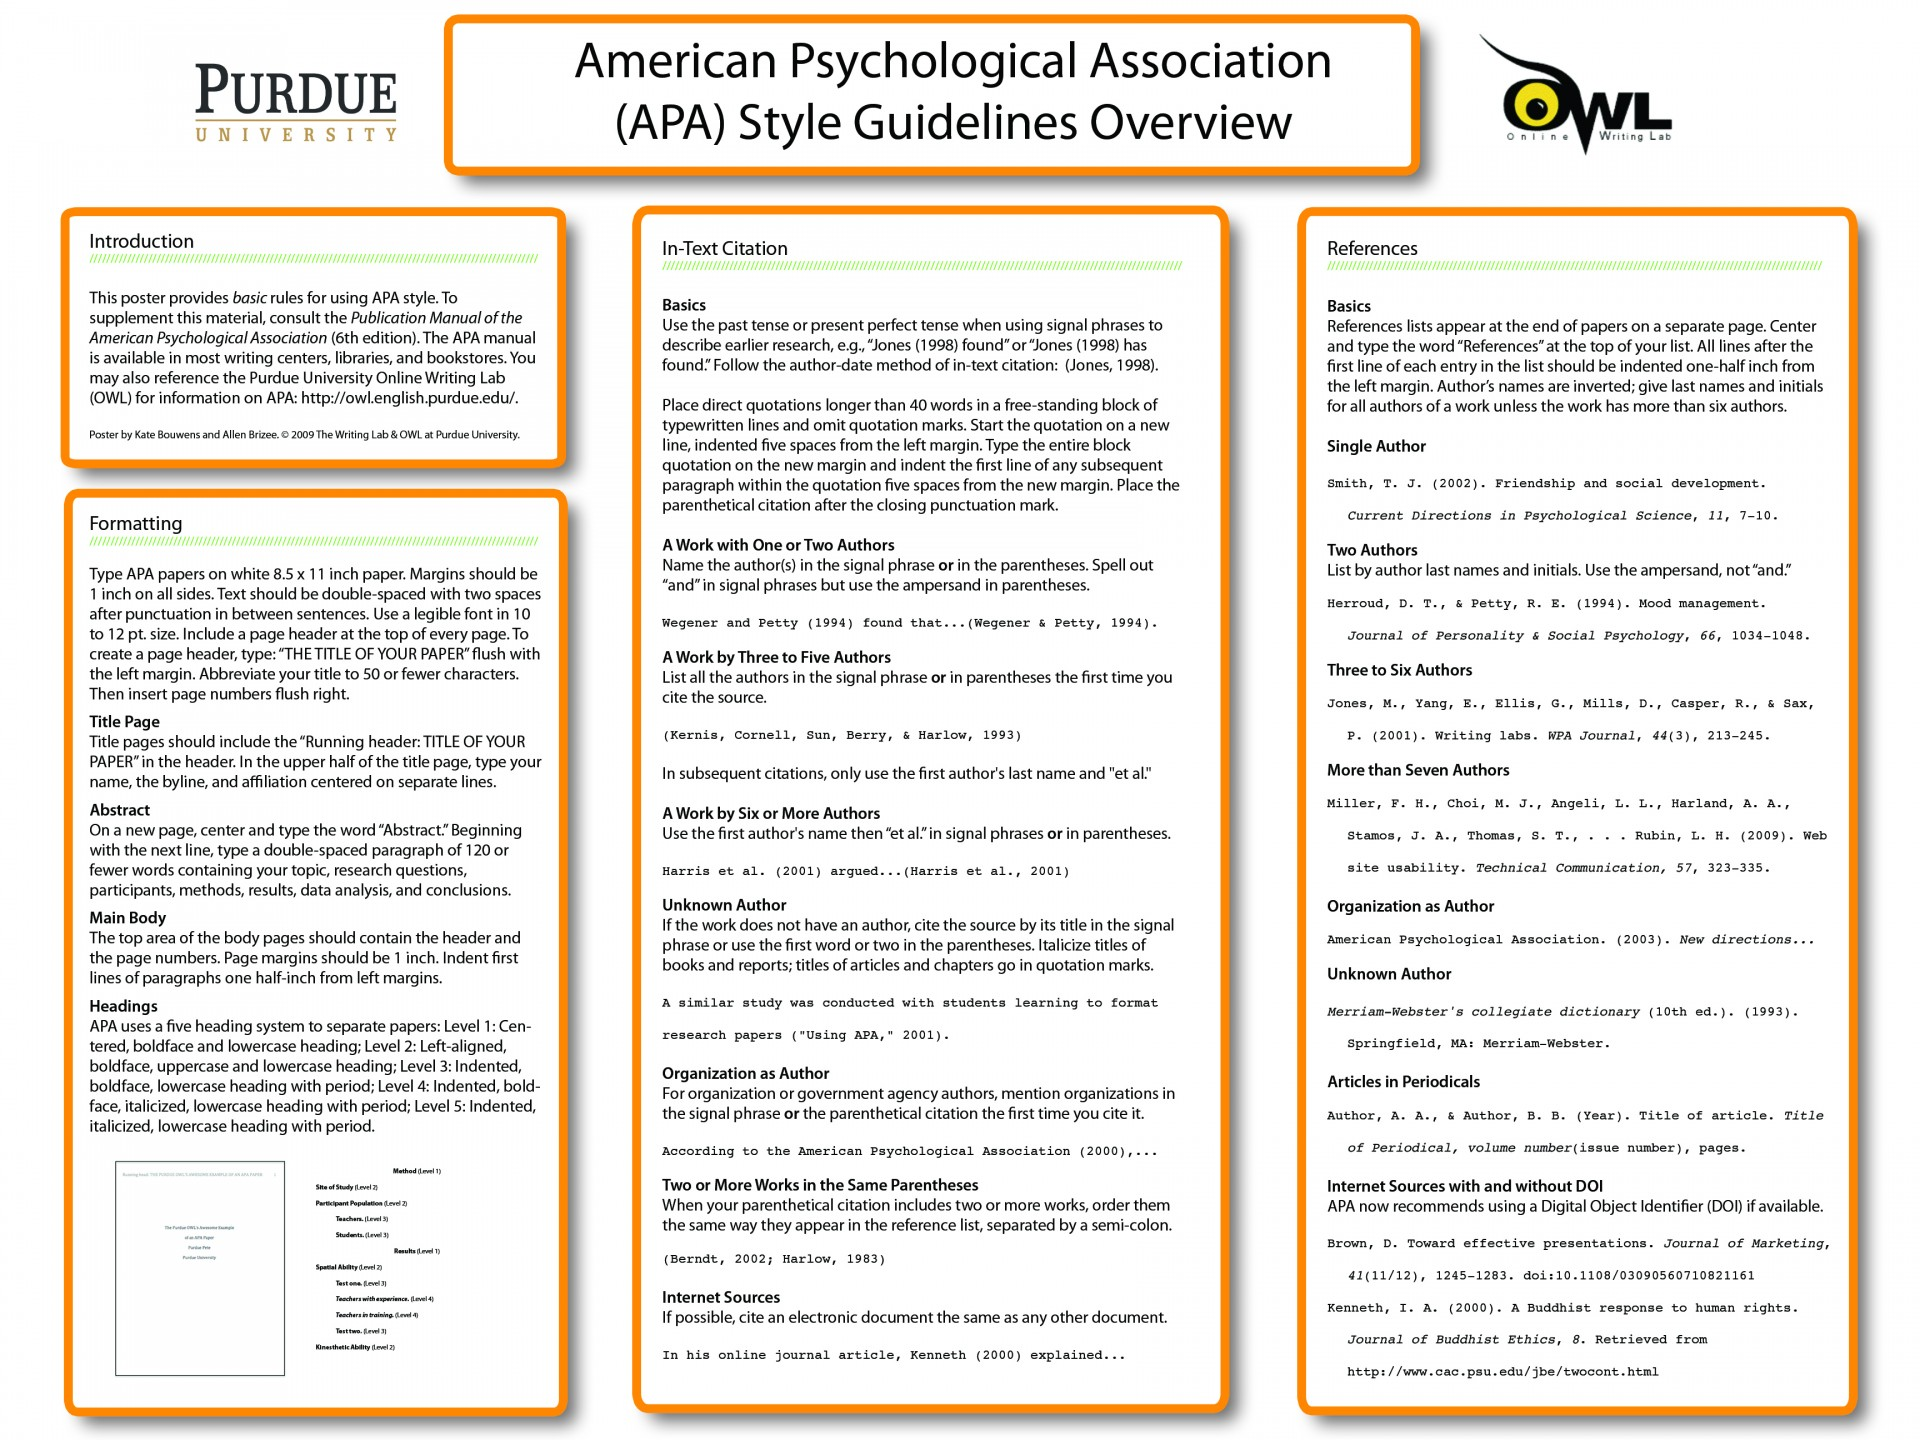 013 Apaposter09 Research Paper How To Cite Unusual A Apa Style Pdf In 6th Edition 1920